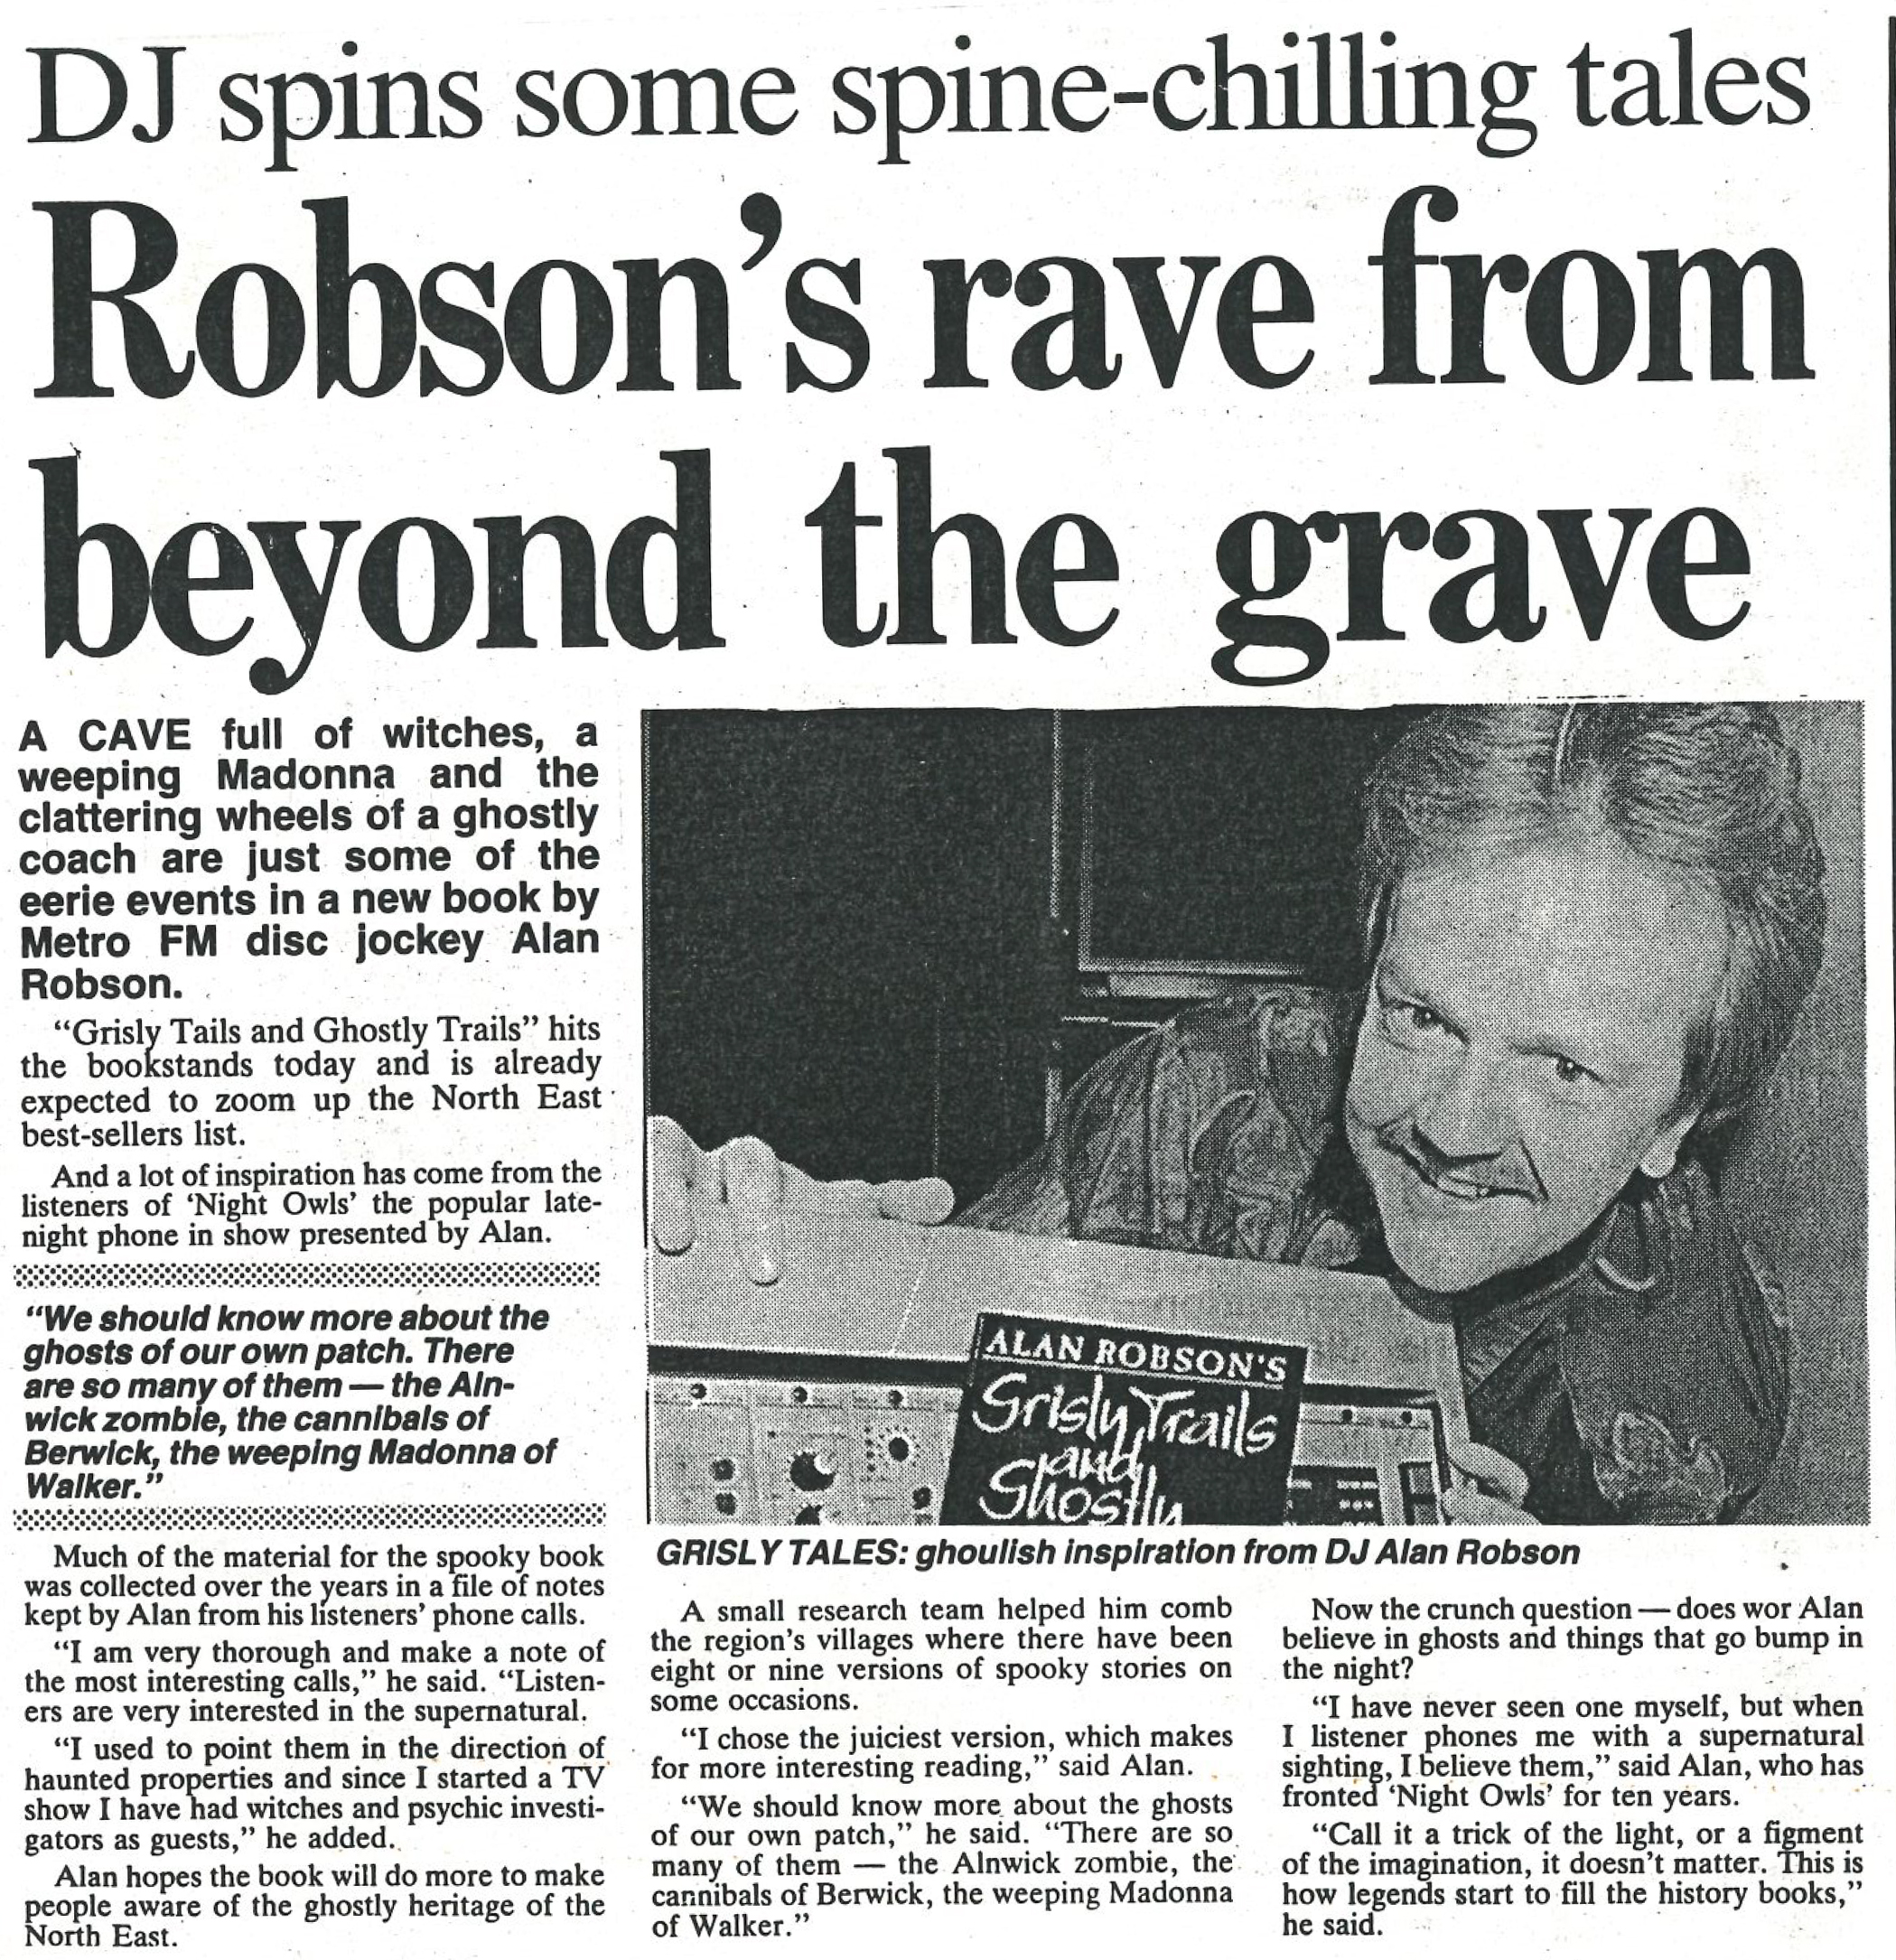 *Article* The Rave From Beyond The Grave